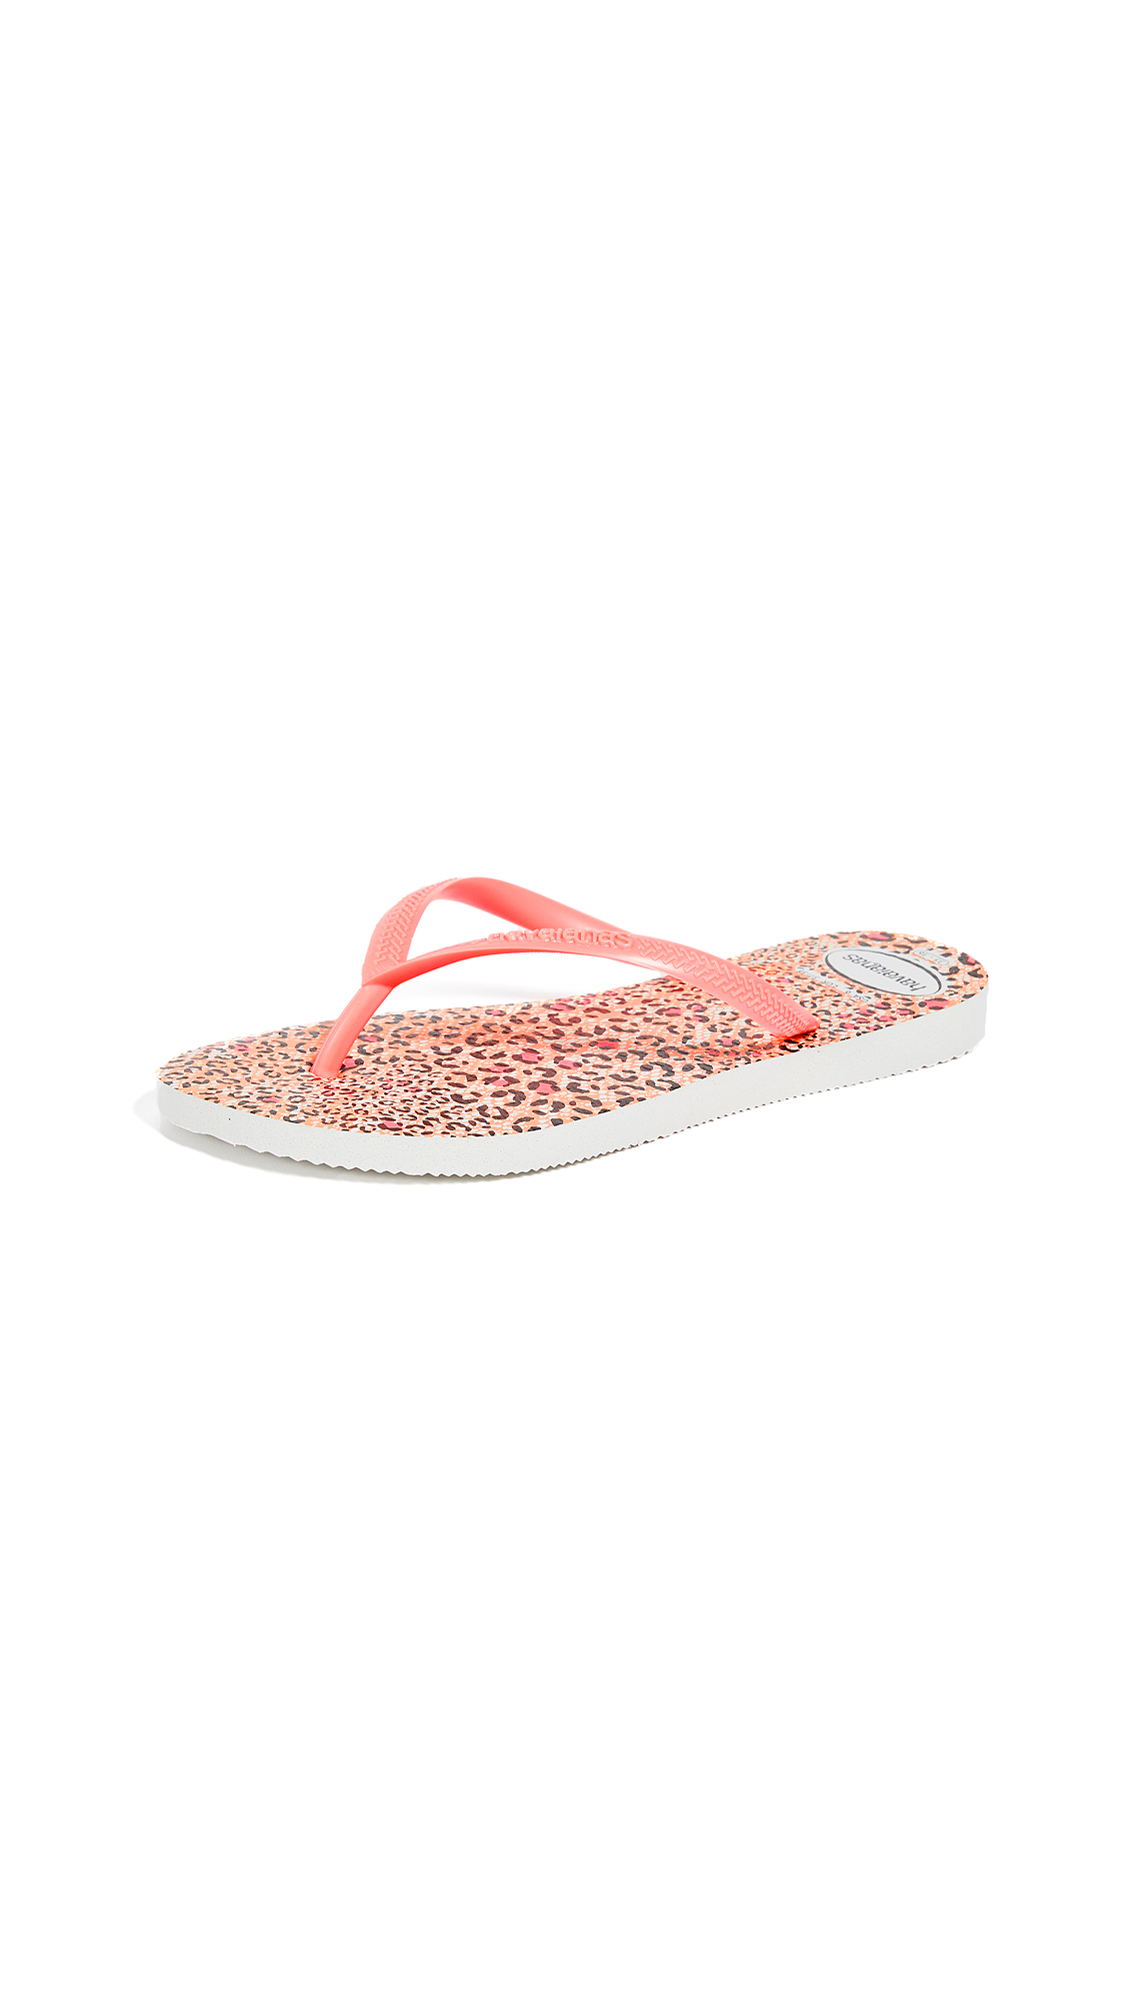 Havaianas Slim Animal Flip Flops - White/Coral